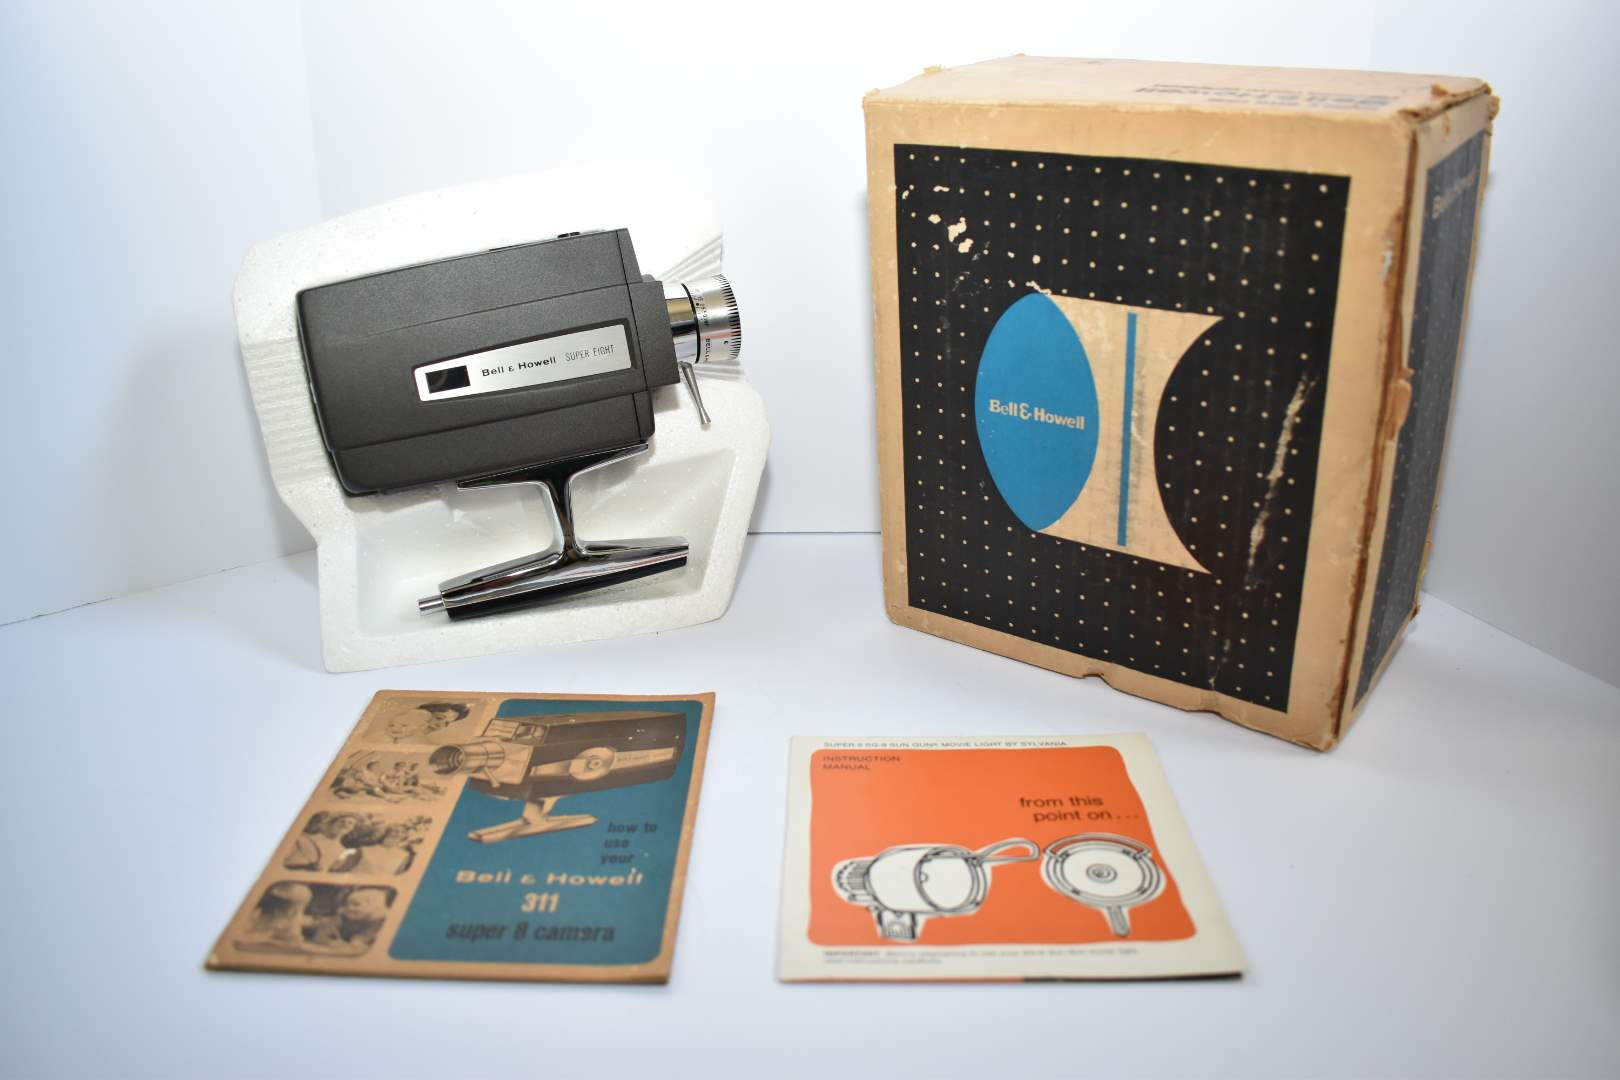 Bell & Howell 311 Super 8mm Camera with Original Box and Manuals